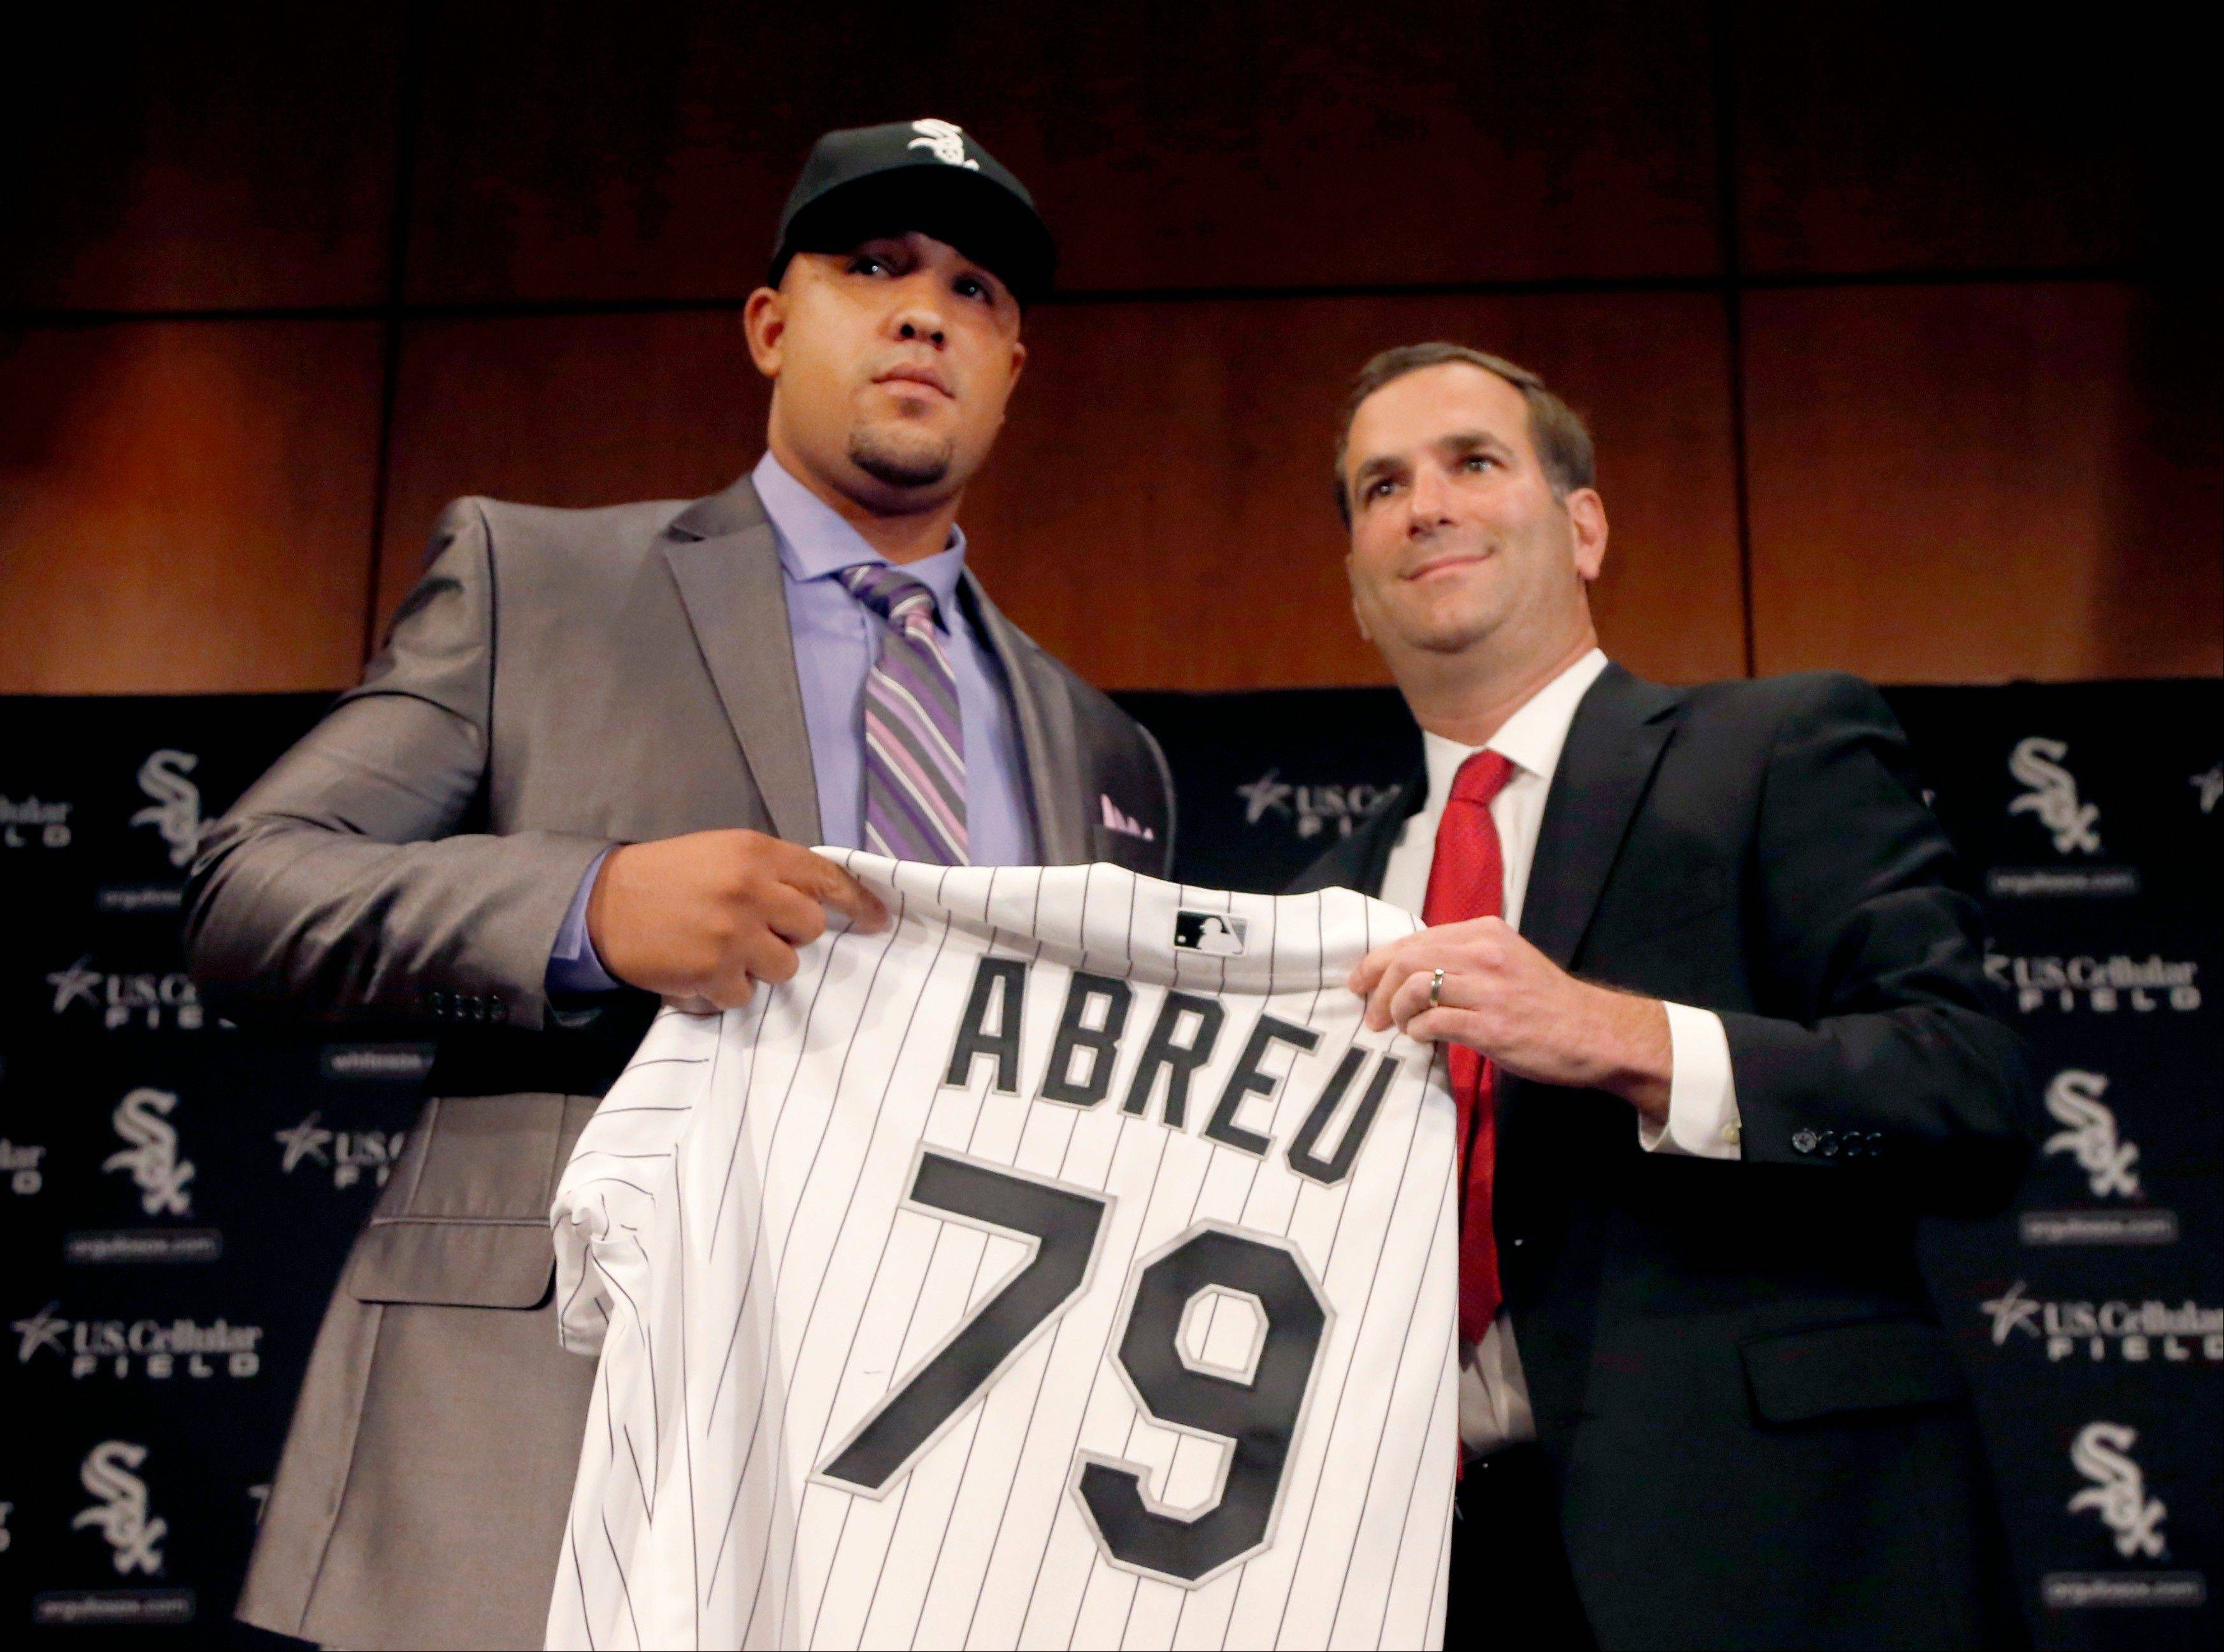 Cuban slugger Jose Abreu, left, smiles with Chicago White Sox General Manager Rick Hahn during a news conference where Hahn announced a six-year, $68 million deal with Abreu. Mike Spellman likes all of Hahn's moves so far though he was sad to see Jose Santiago go.